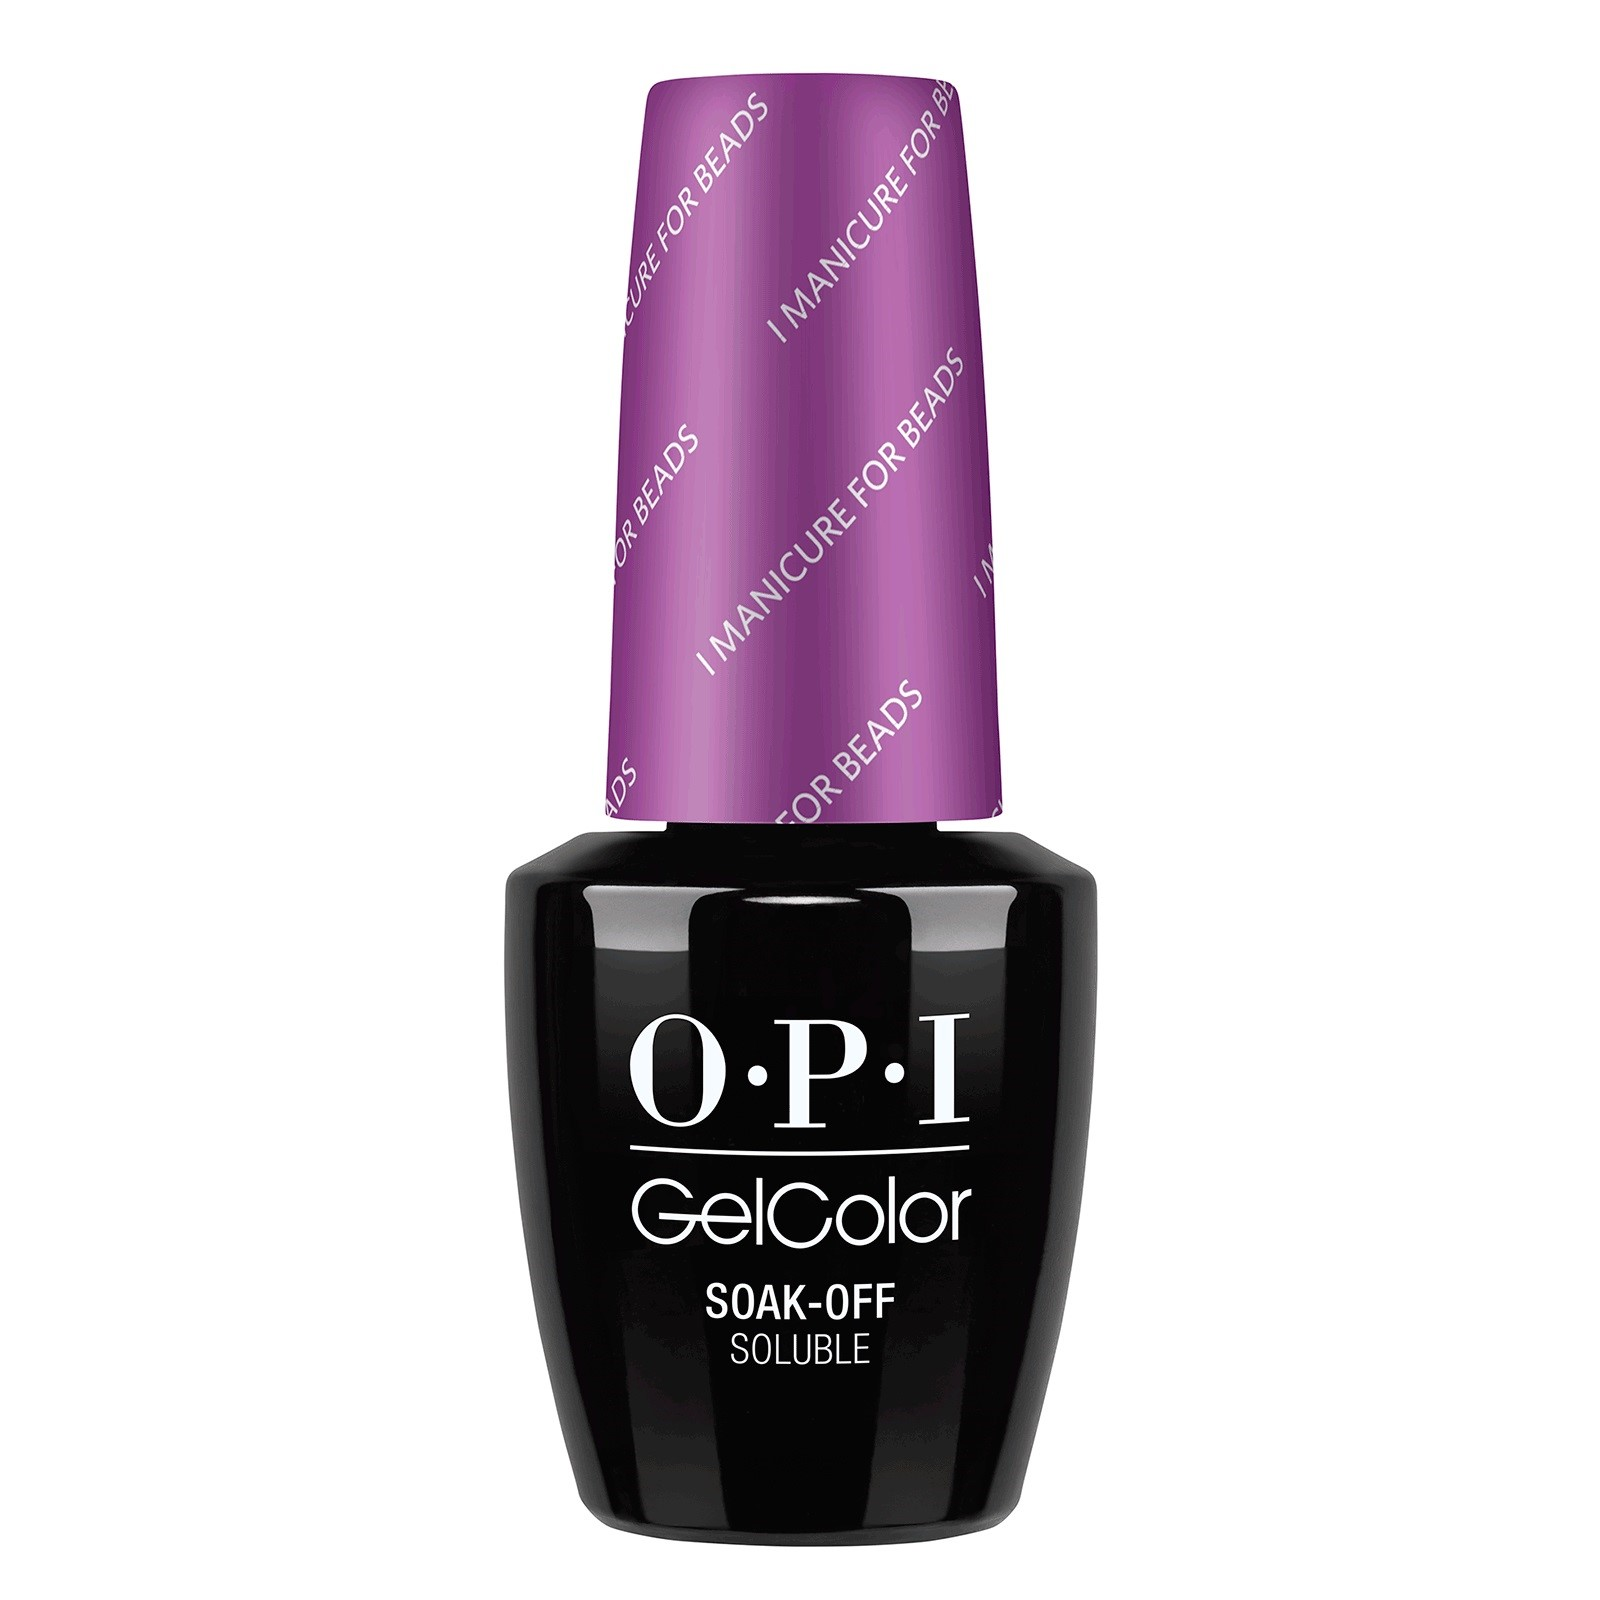 OPI GelColor, I Manicure for Beads